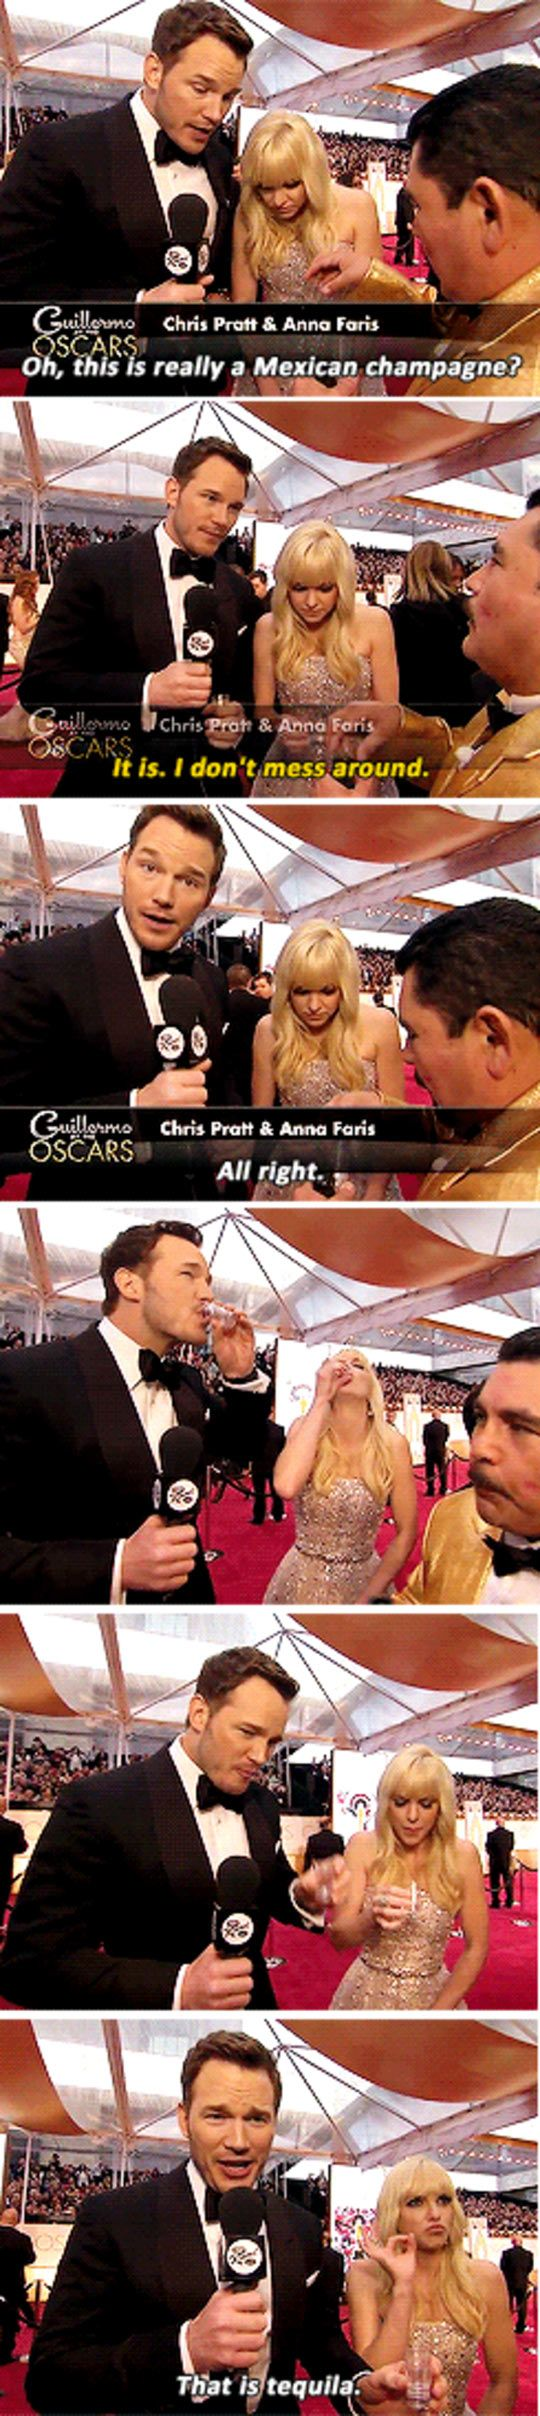 Chris Pratt Gets Pranked